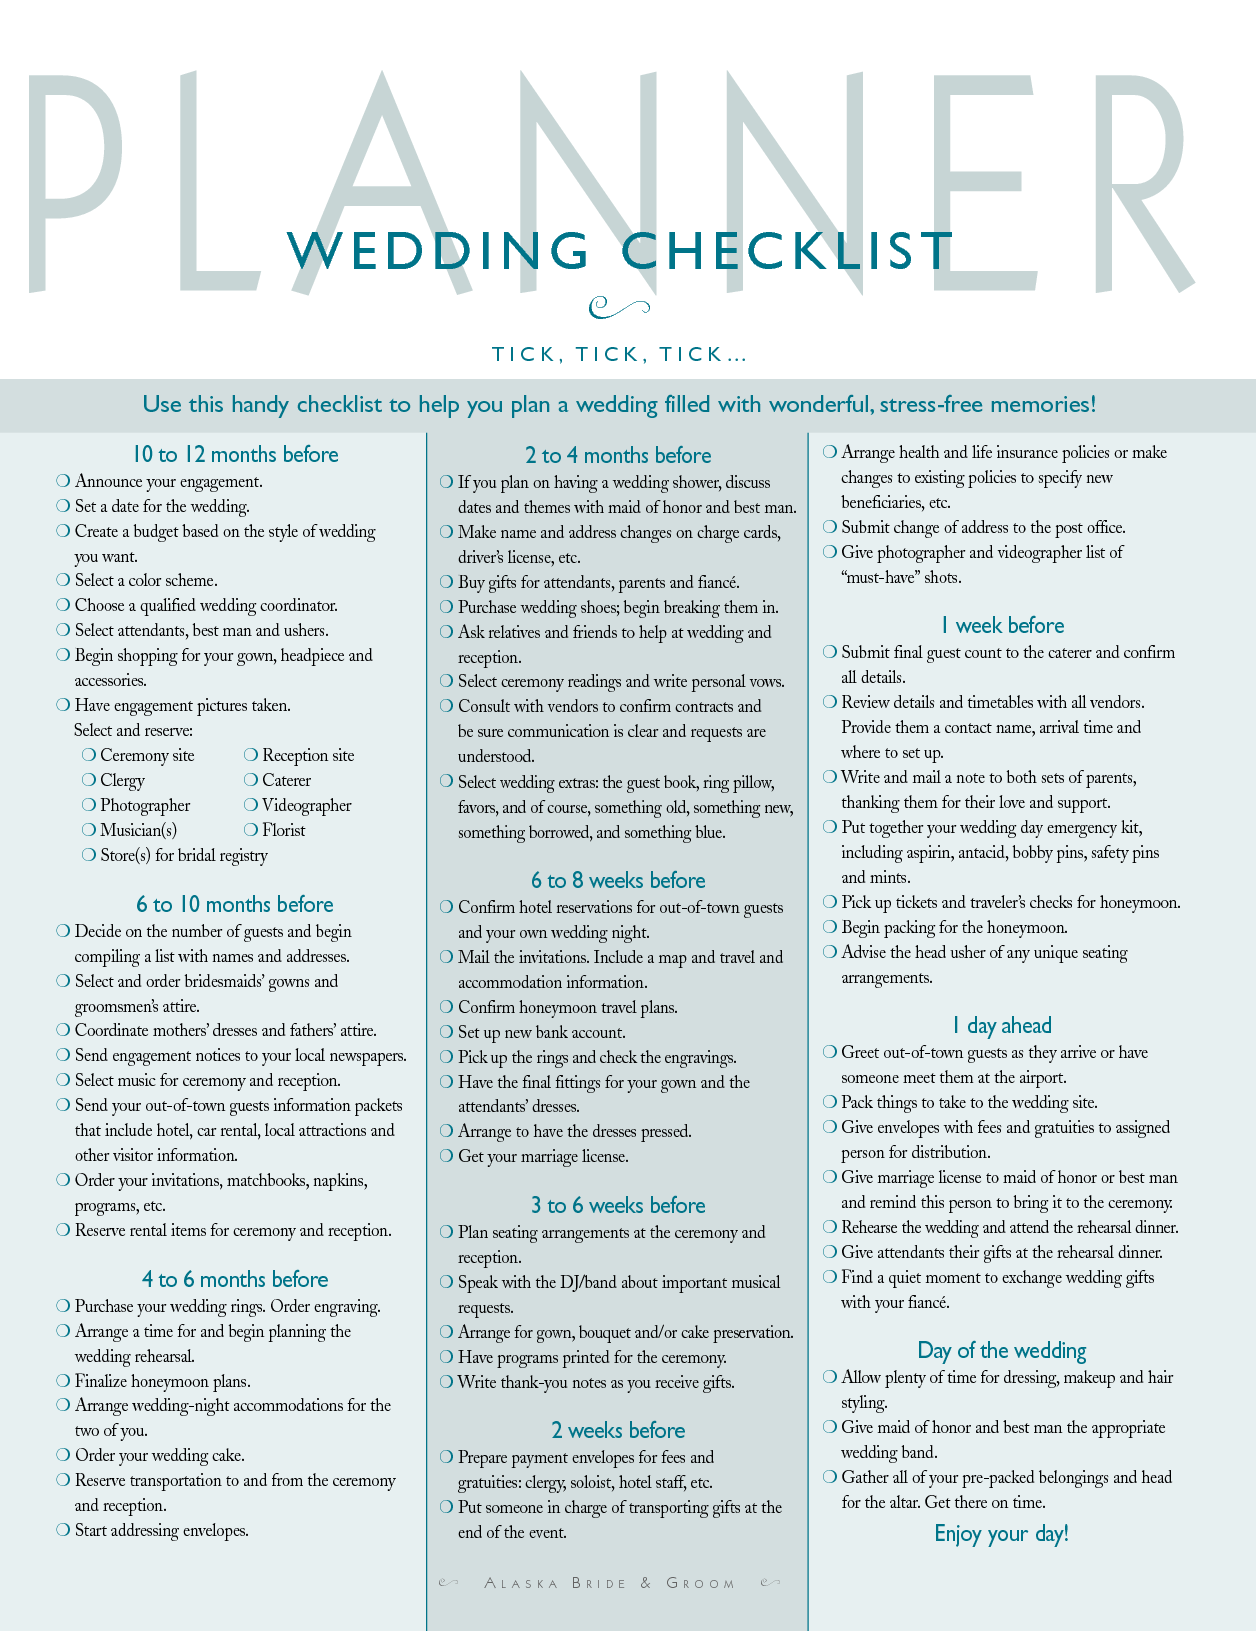 Wedding organization planning a guide for the unorganized bride